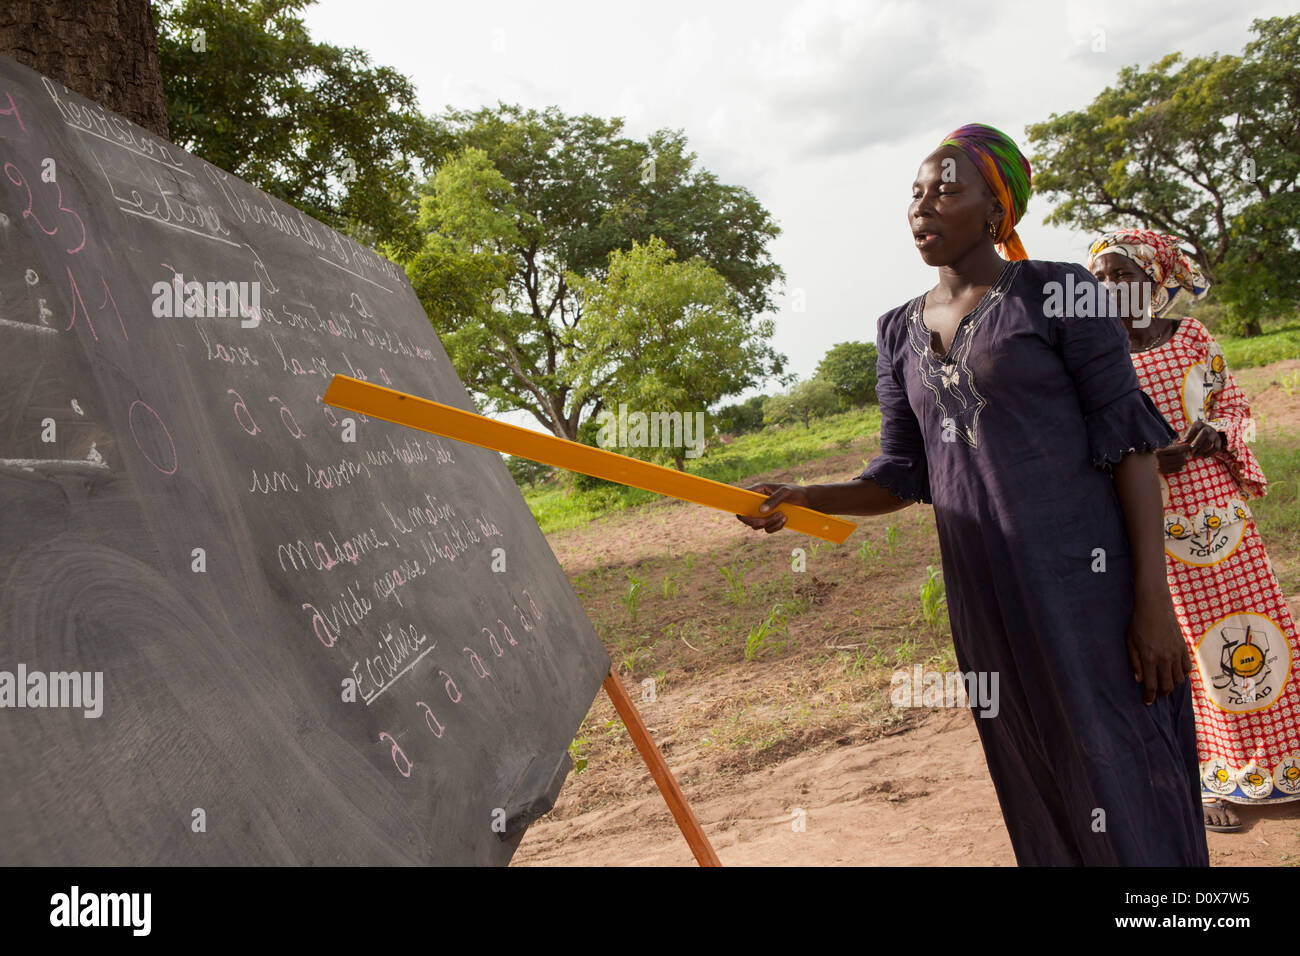 Women learn reading and writing in an adult education class in Doba, Chad, Africa. - Stock Image